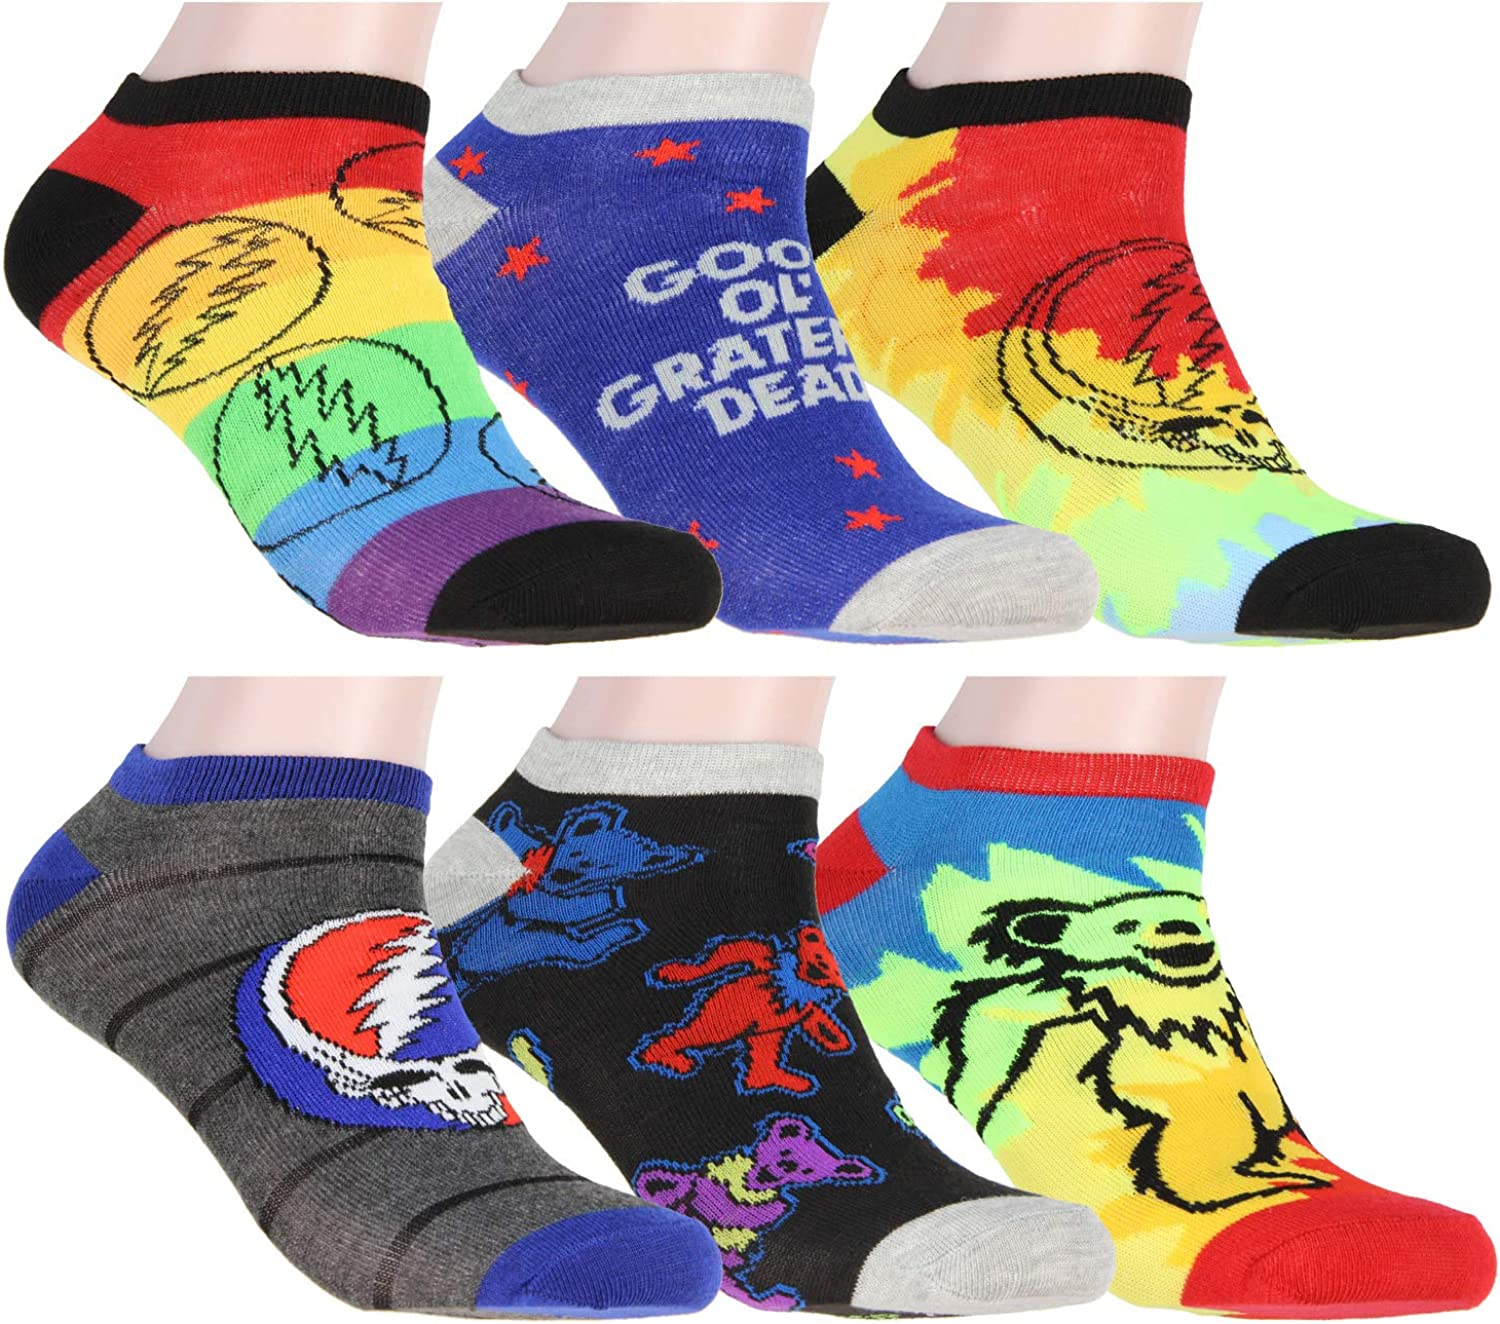 Grateful Dead Socks Adult Tie Max 44% OFF Spasm price Dye Dancing Your Bears Steal F And